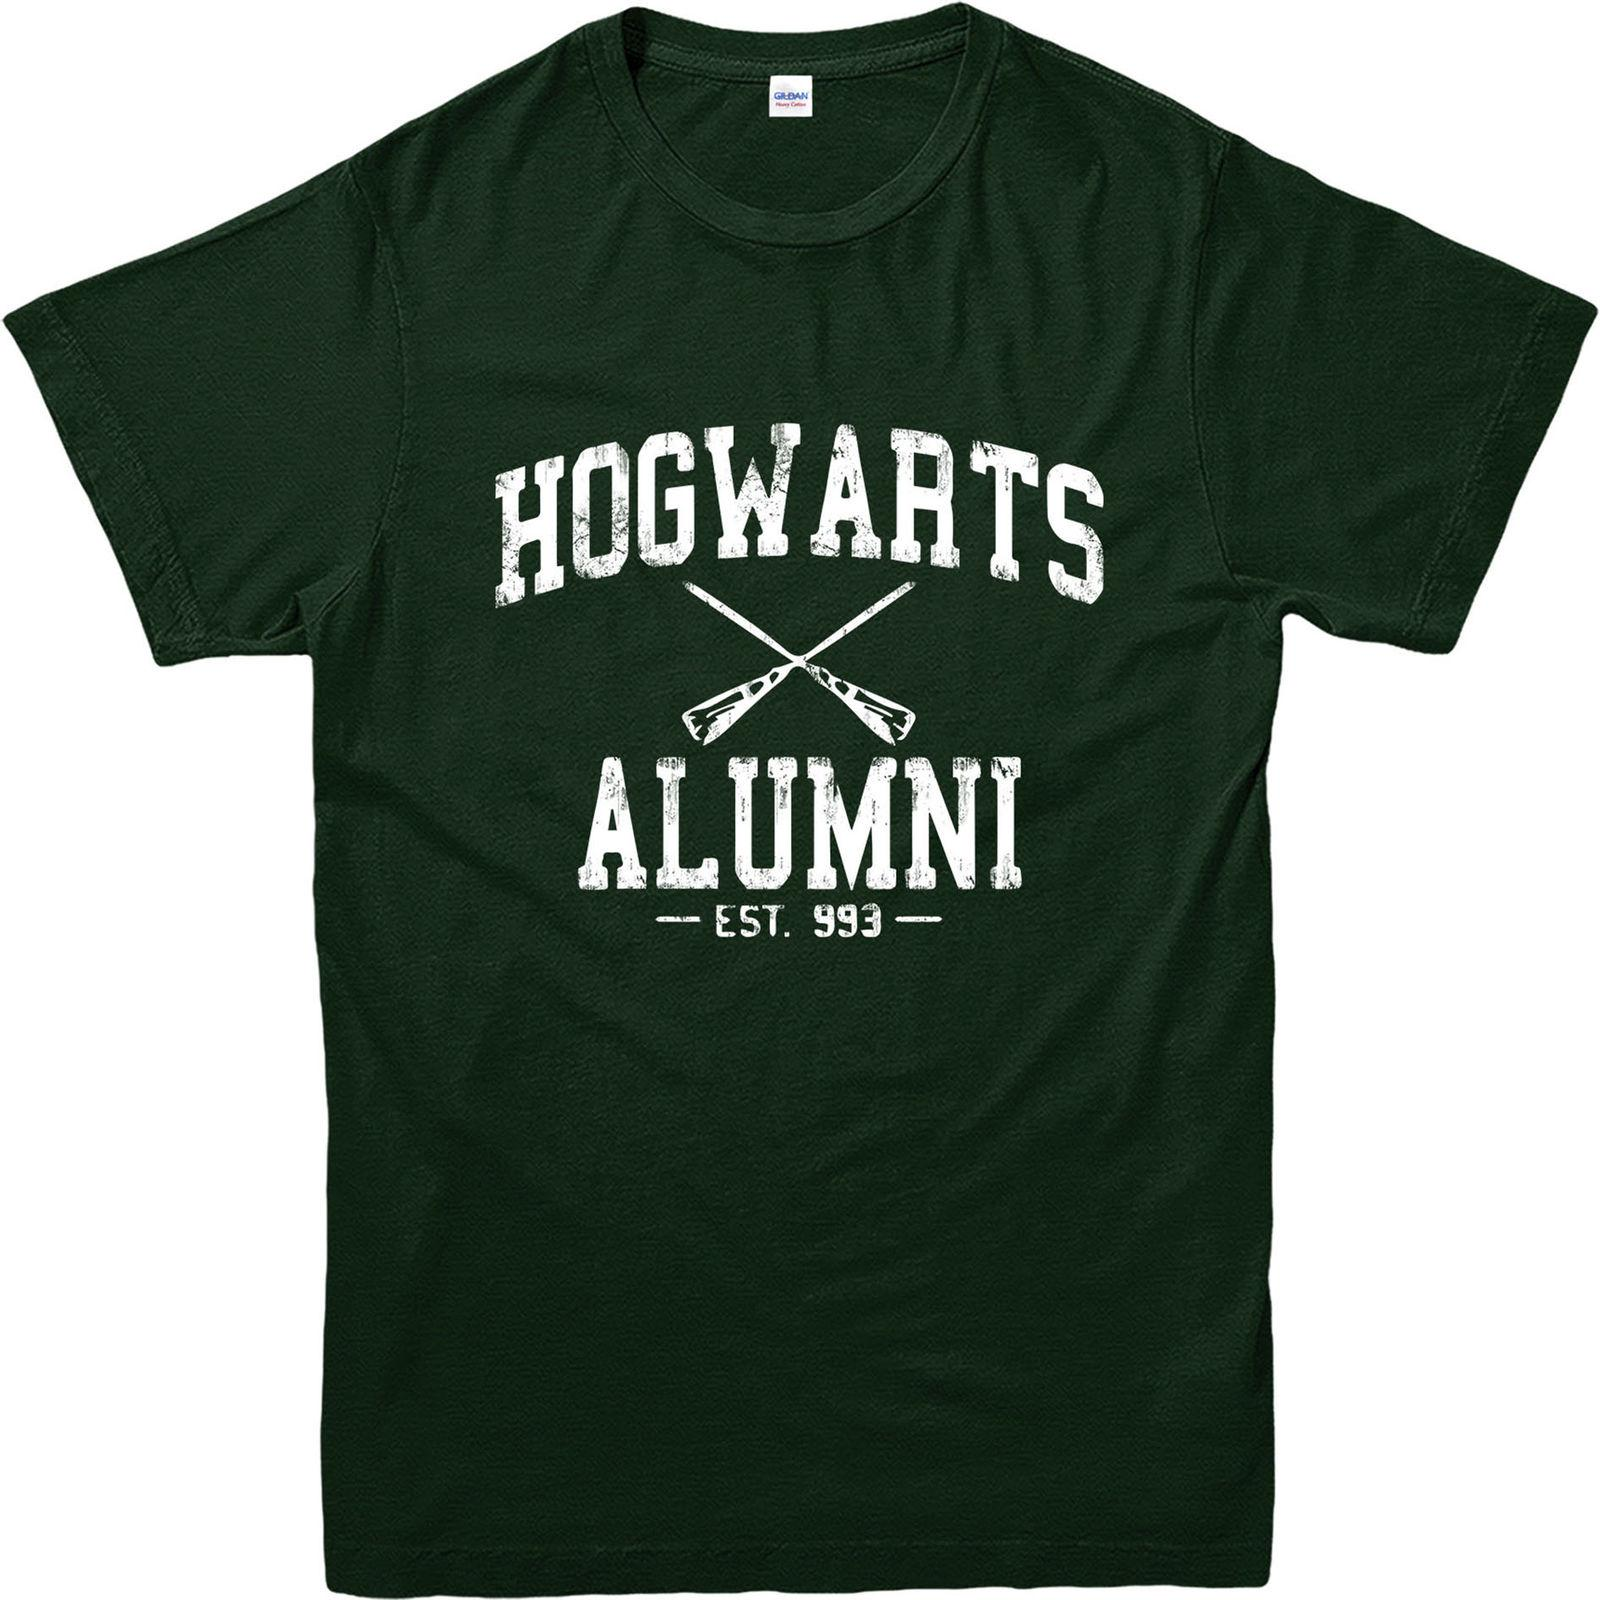 5ae7bdd6 Harry Potter T Shirt, Hogwarts Alumni T Shirt, Inspired Design Top Funny  Unisex Casual Tee Gift 24 Hour T Shirt Rude Tshirts From Apparelconnect, ...